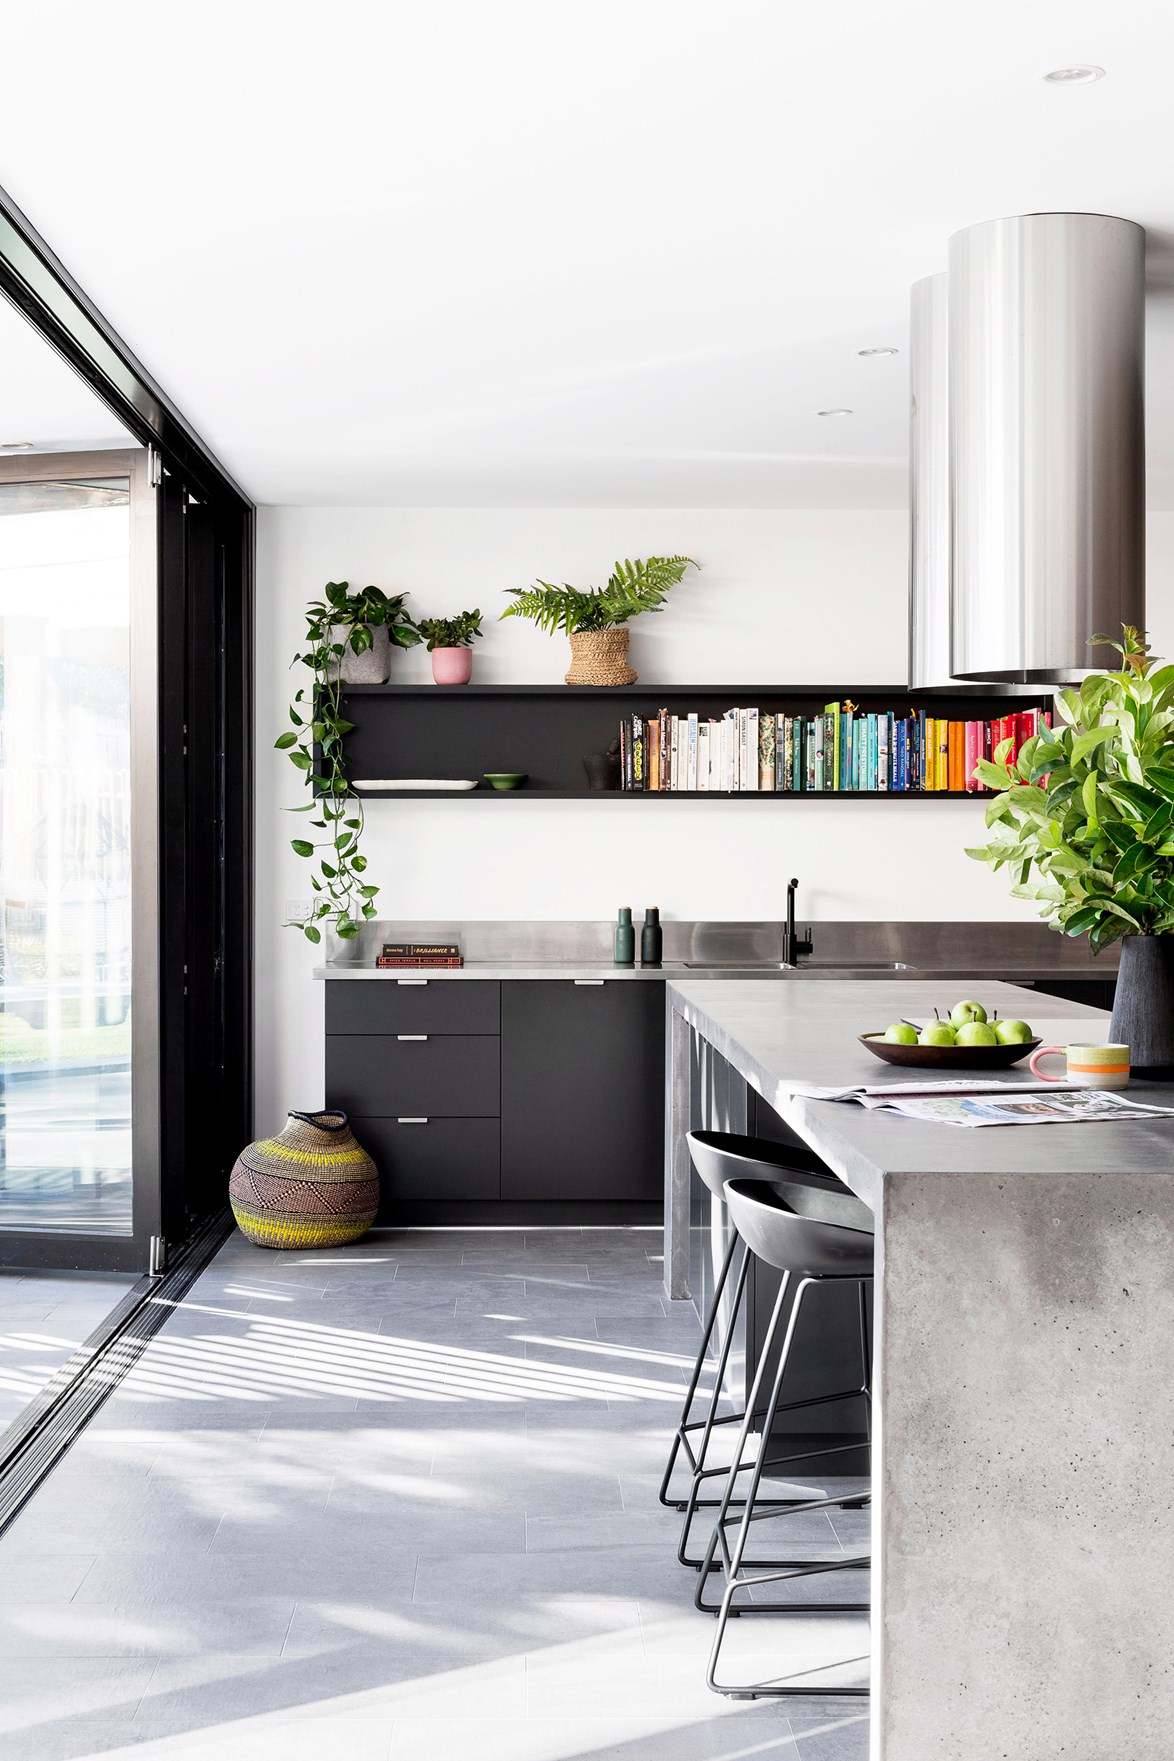 <p>**INSTALL A WALL-MOUNTED SHELVING UNIT**<p> <P>This industrial kitchen forgoes a full-length splashback for a striking wall-mounted shelving unit. A series of colour-coordinated books show that this is a truly multi-functional family hub where the kids complete their homework as meals are prepared.<p> <p>*Photo: Martina Gemmola / bauersyndication.com.au*<P>